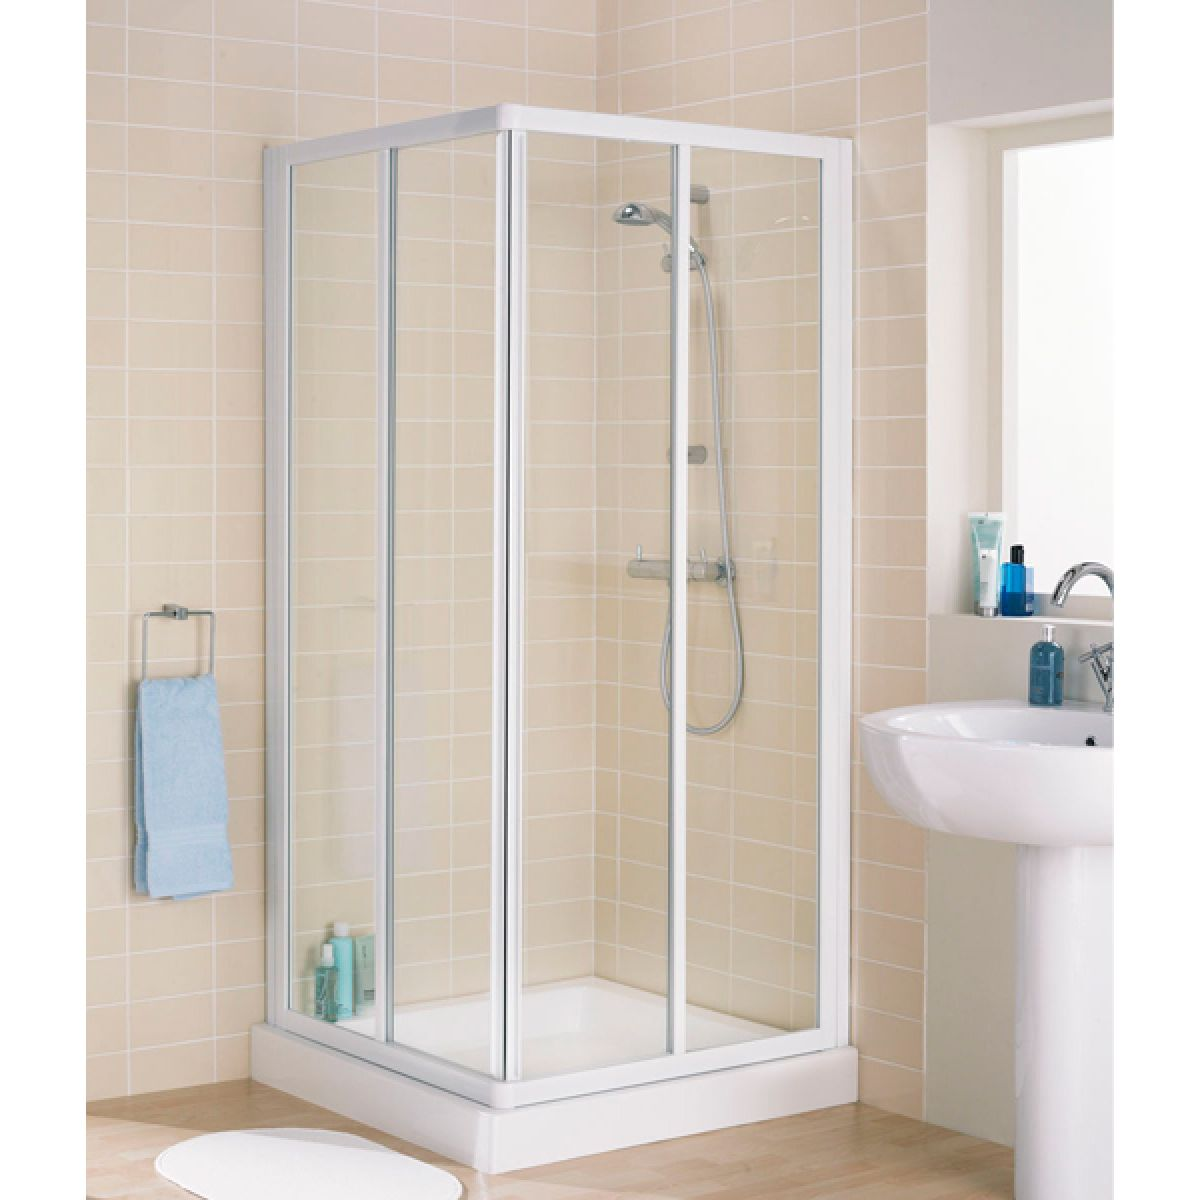 Lakes Classic Silver Corner Entry Shower Enclosure